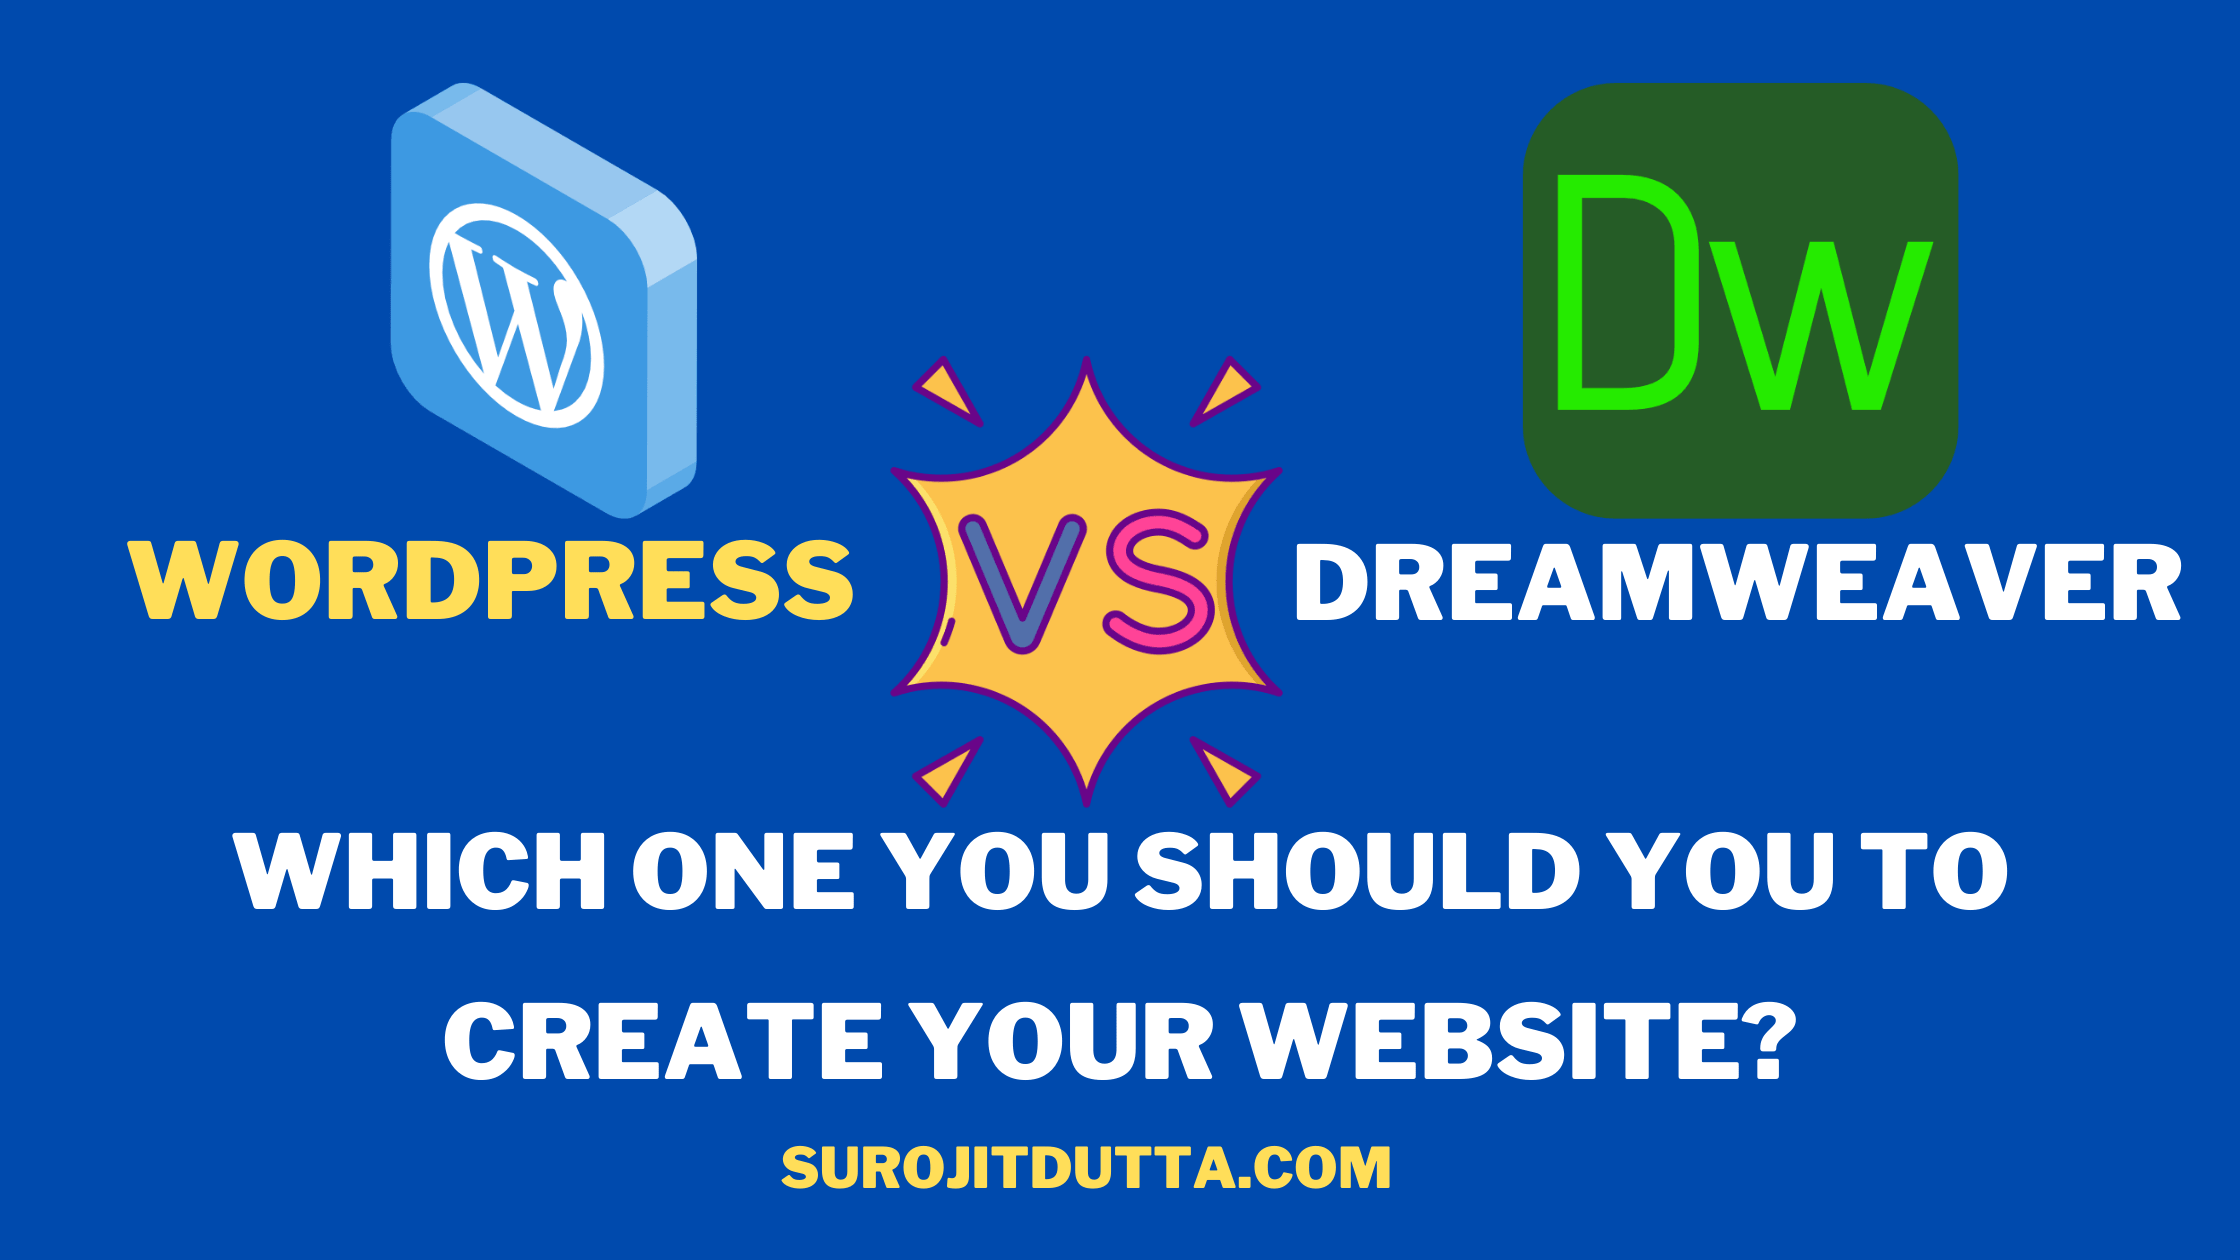 Dreamweaver Vs WordPress - Which Tool Is Better For You